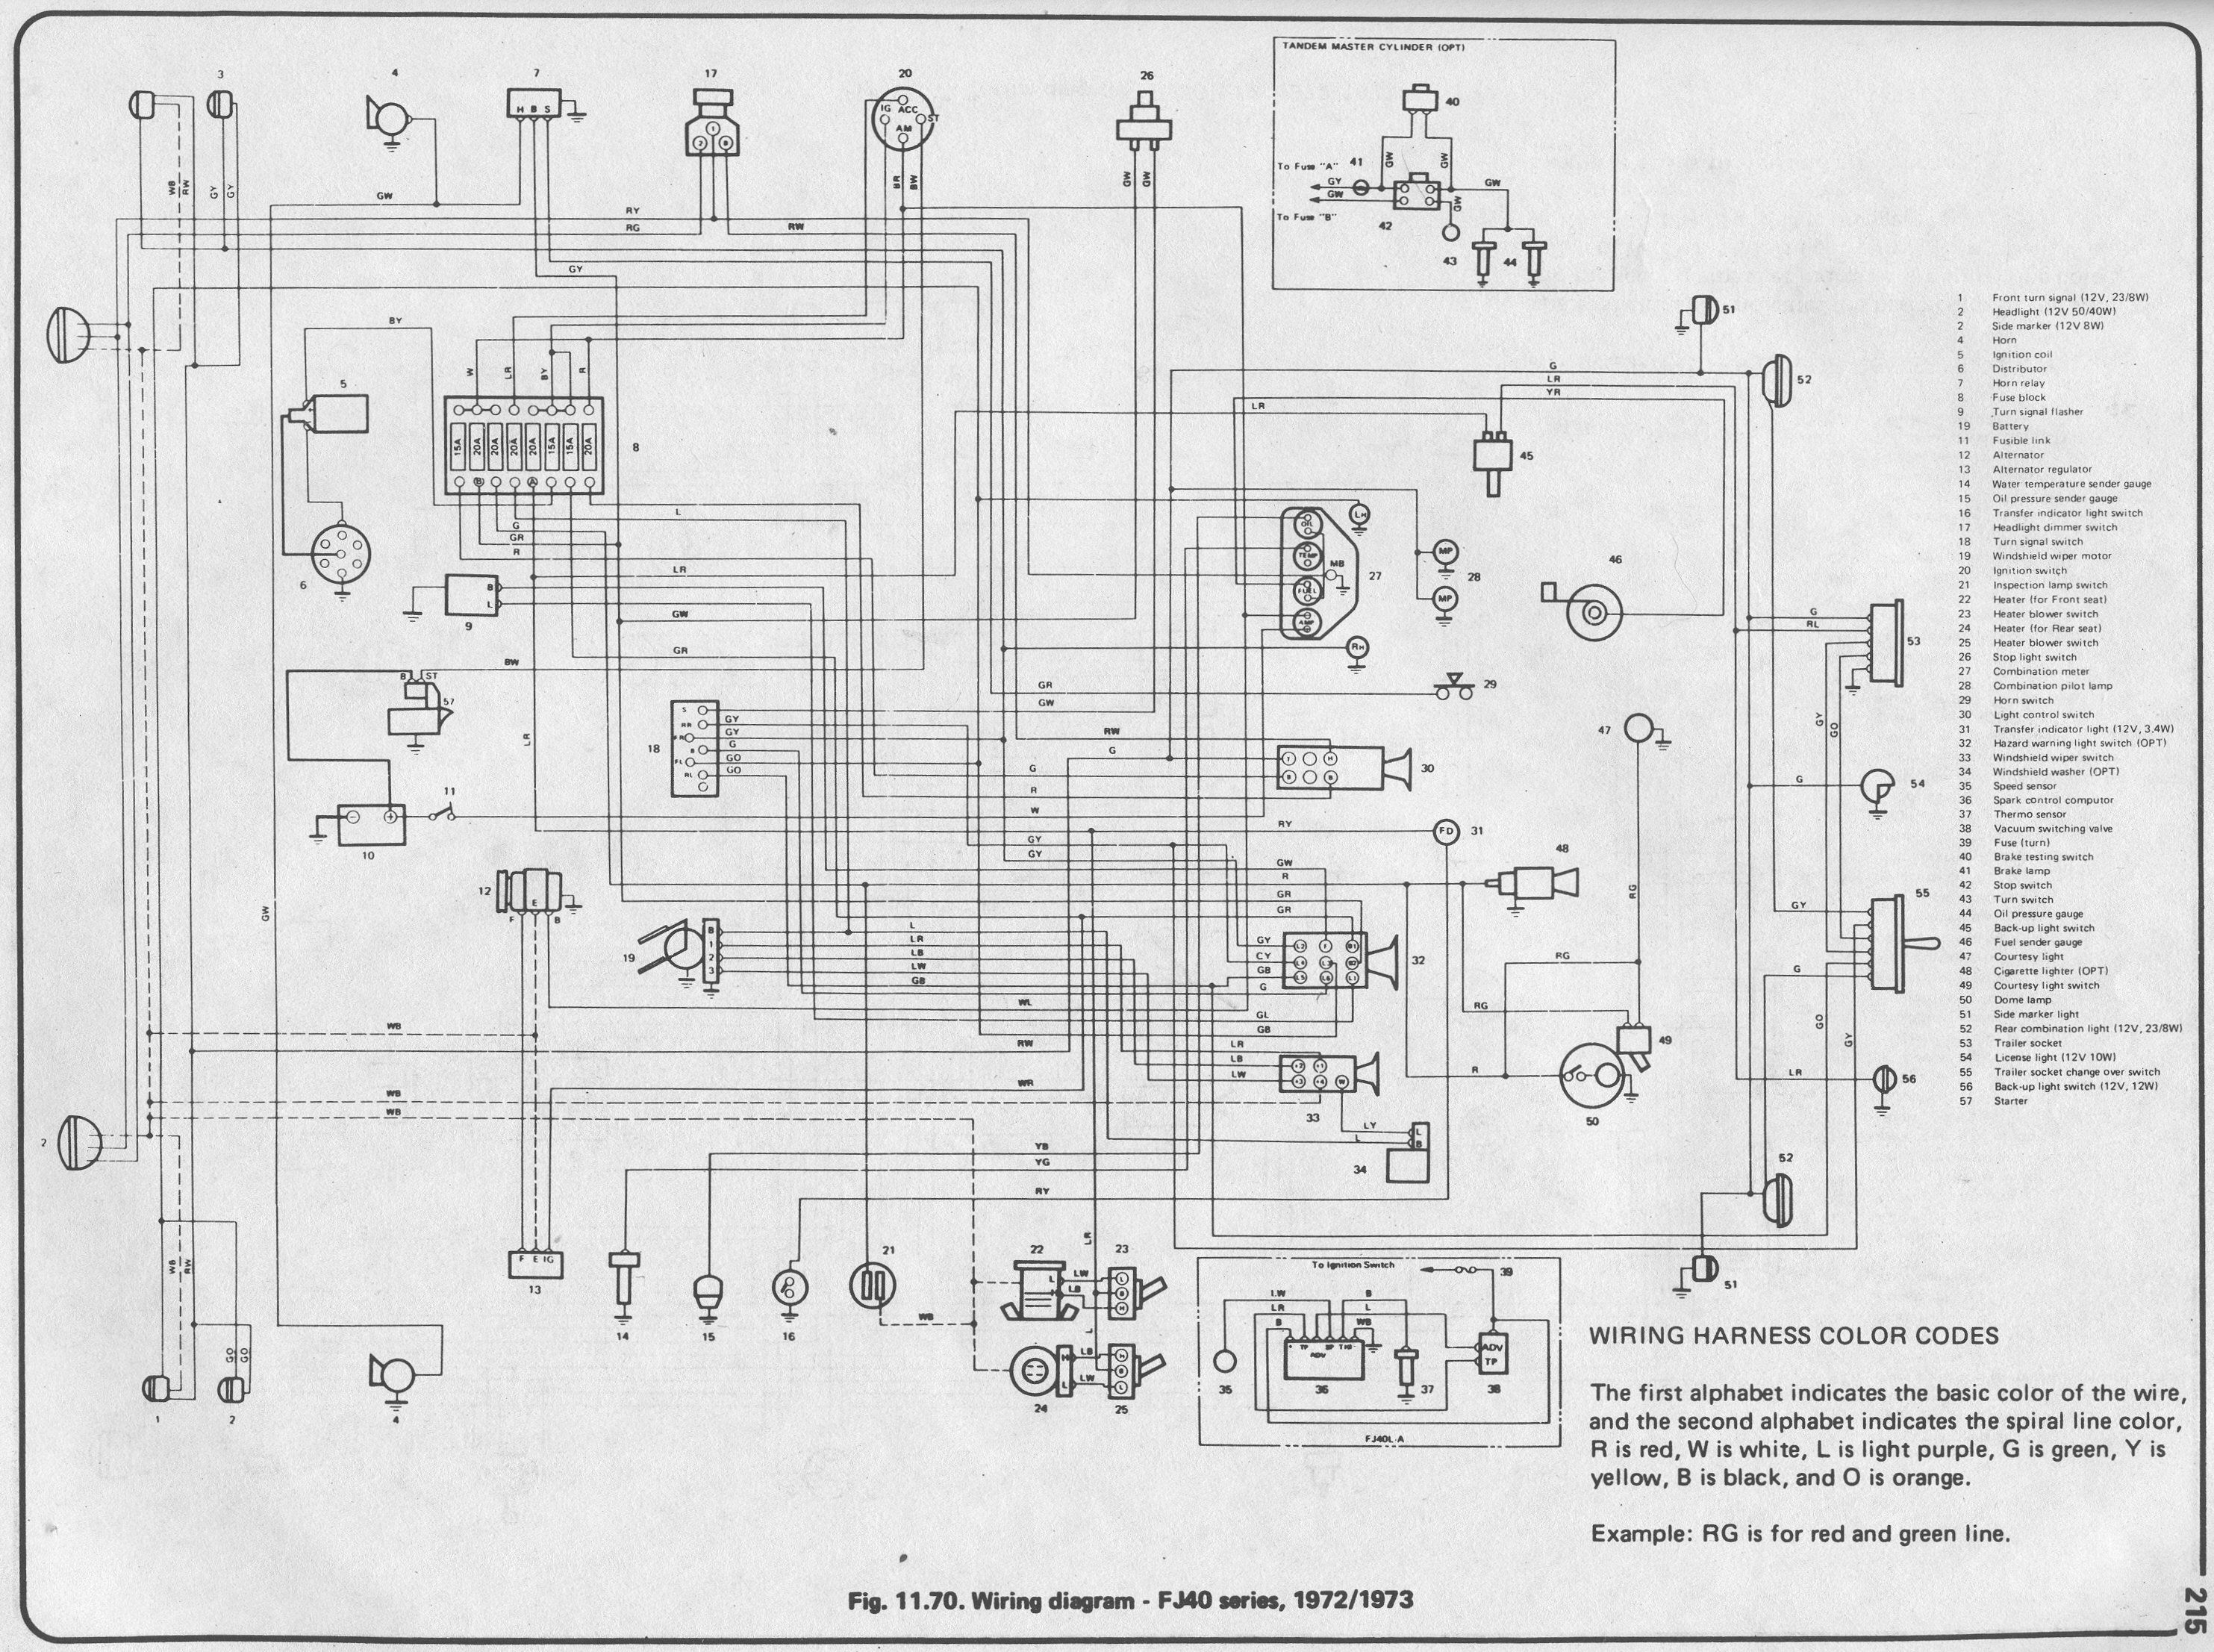 toyota land cruiser 1978 fj40 wiring diagram